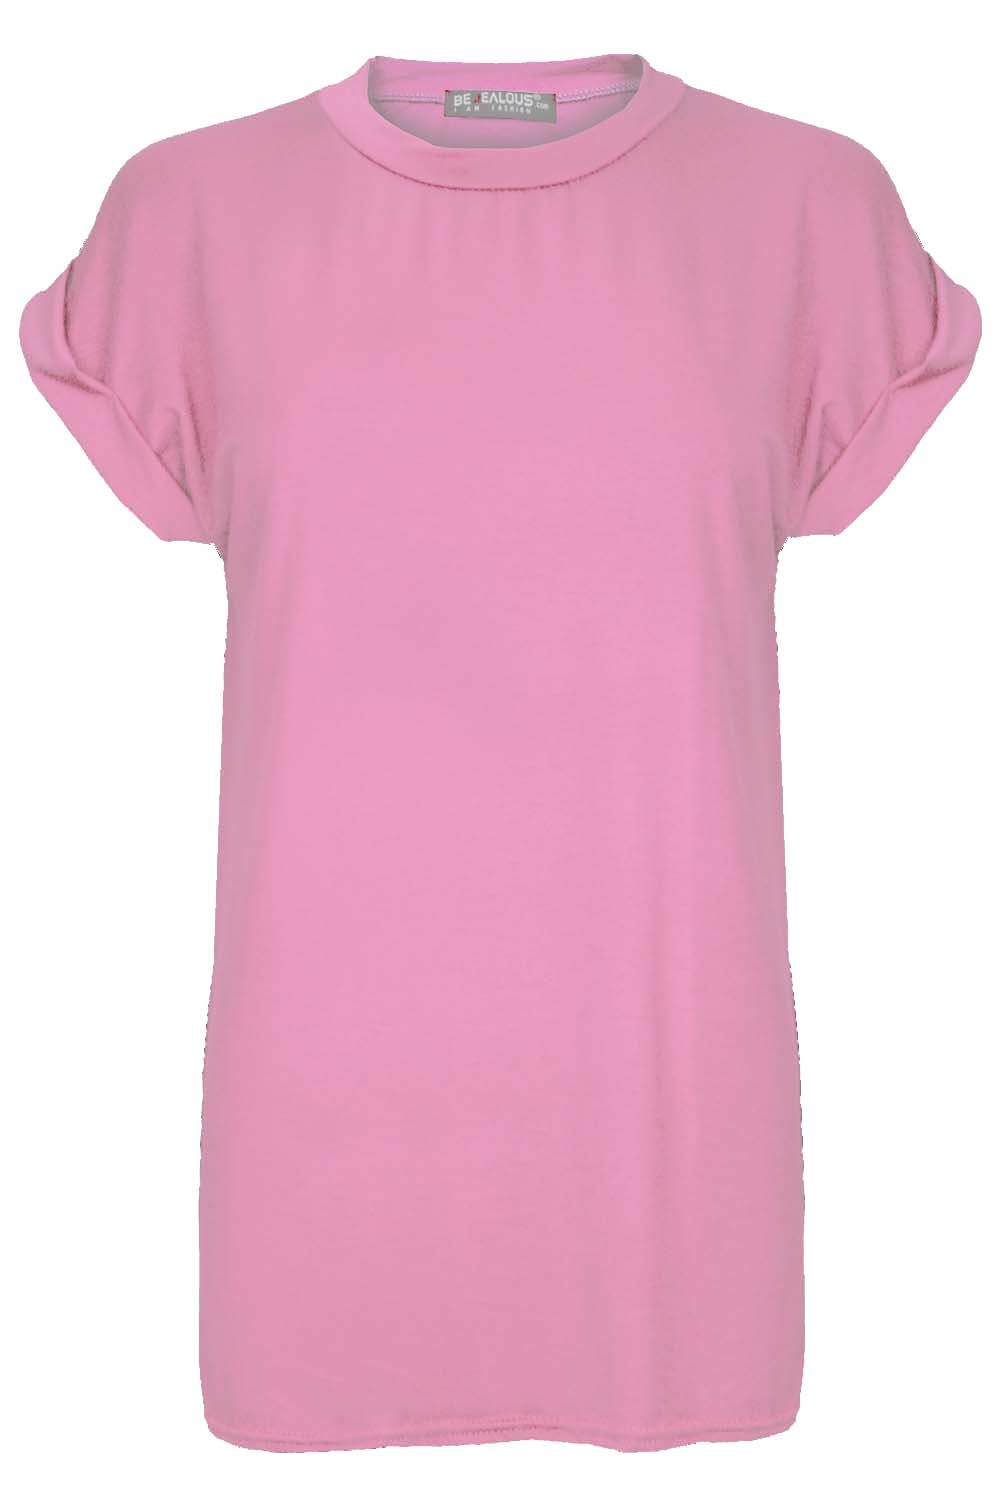 Womens-Lips-Eyes-T-Shirt-Ladies-Stretch-Baggy-Oversized-Short-Turn-Up-Sleeve-Top